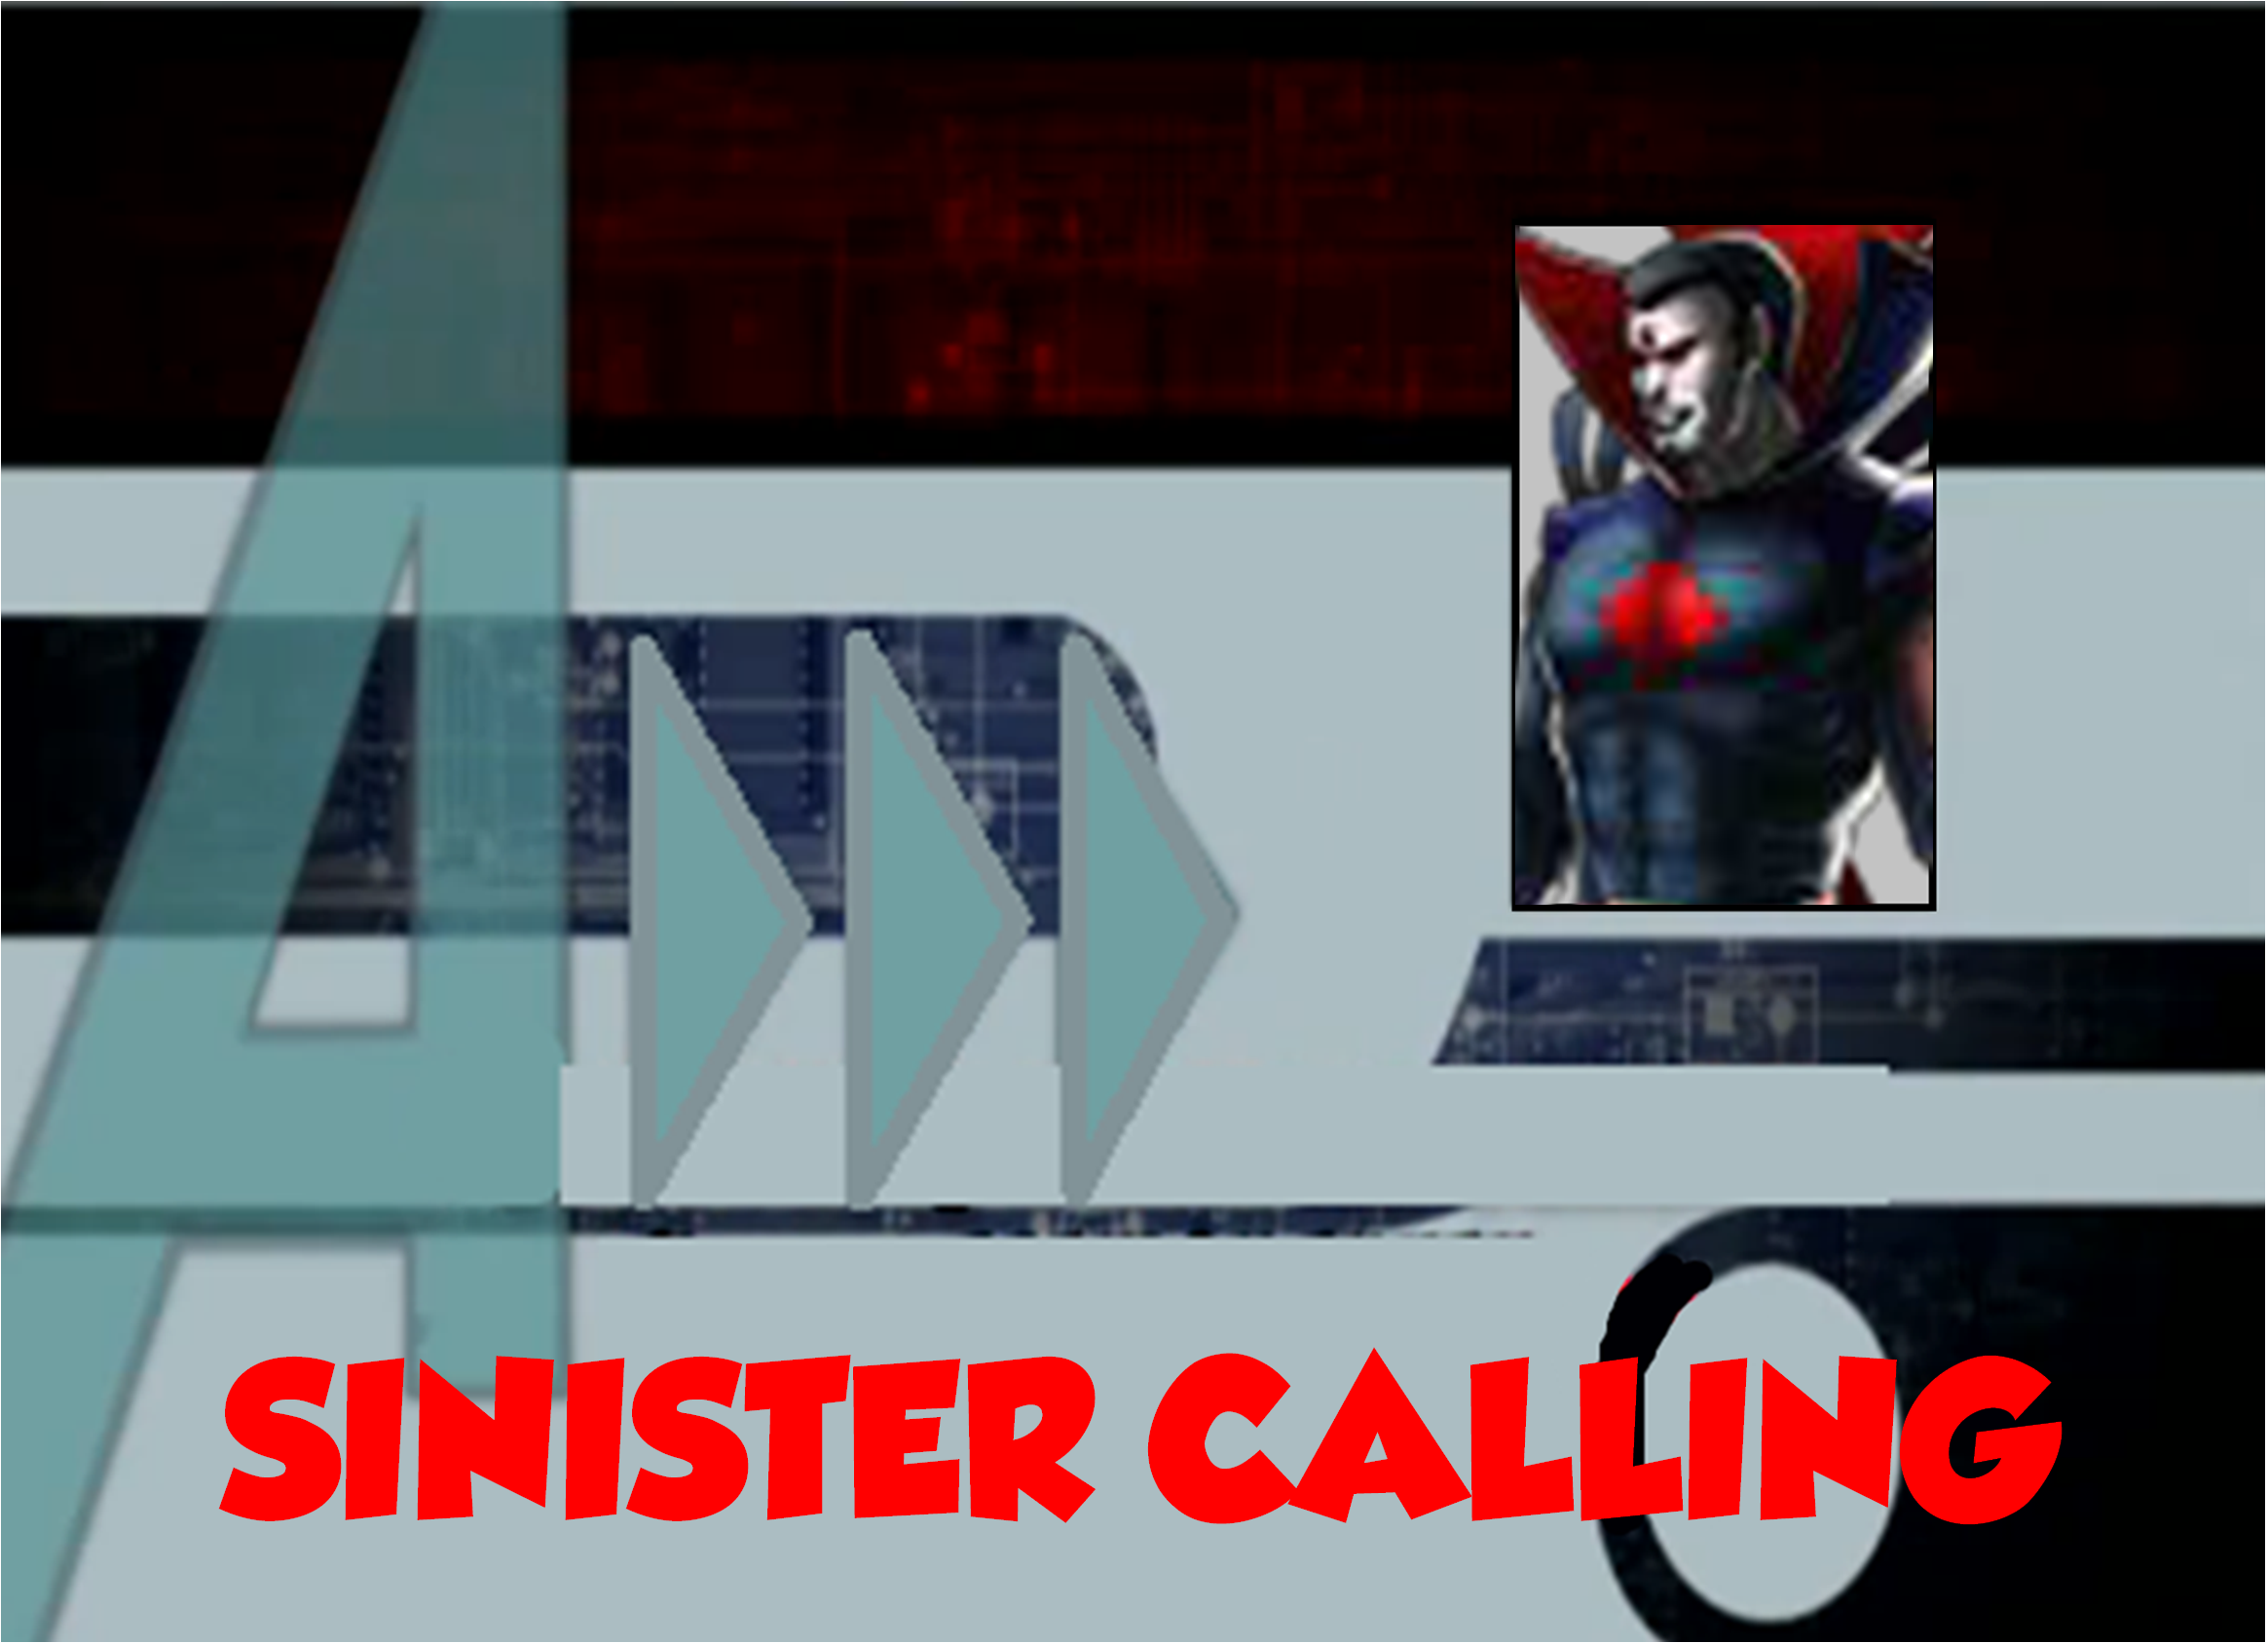 Sinister Calling (A!)